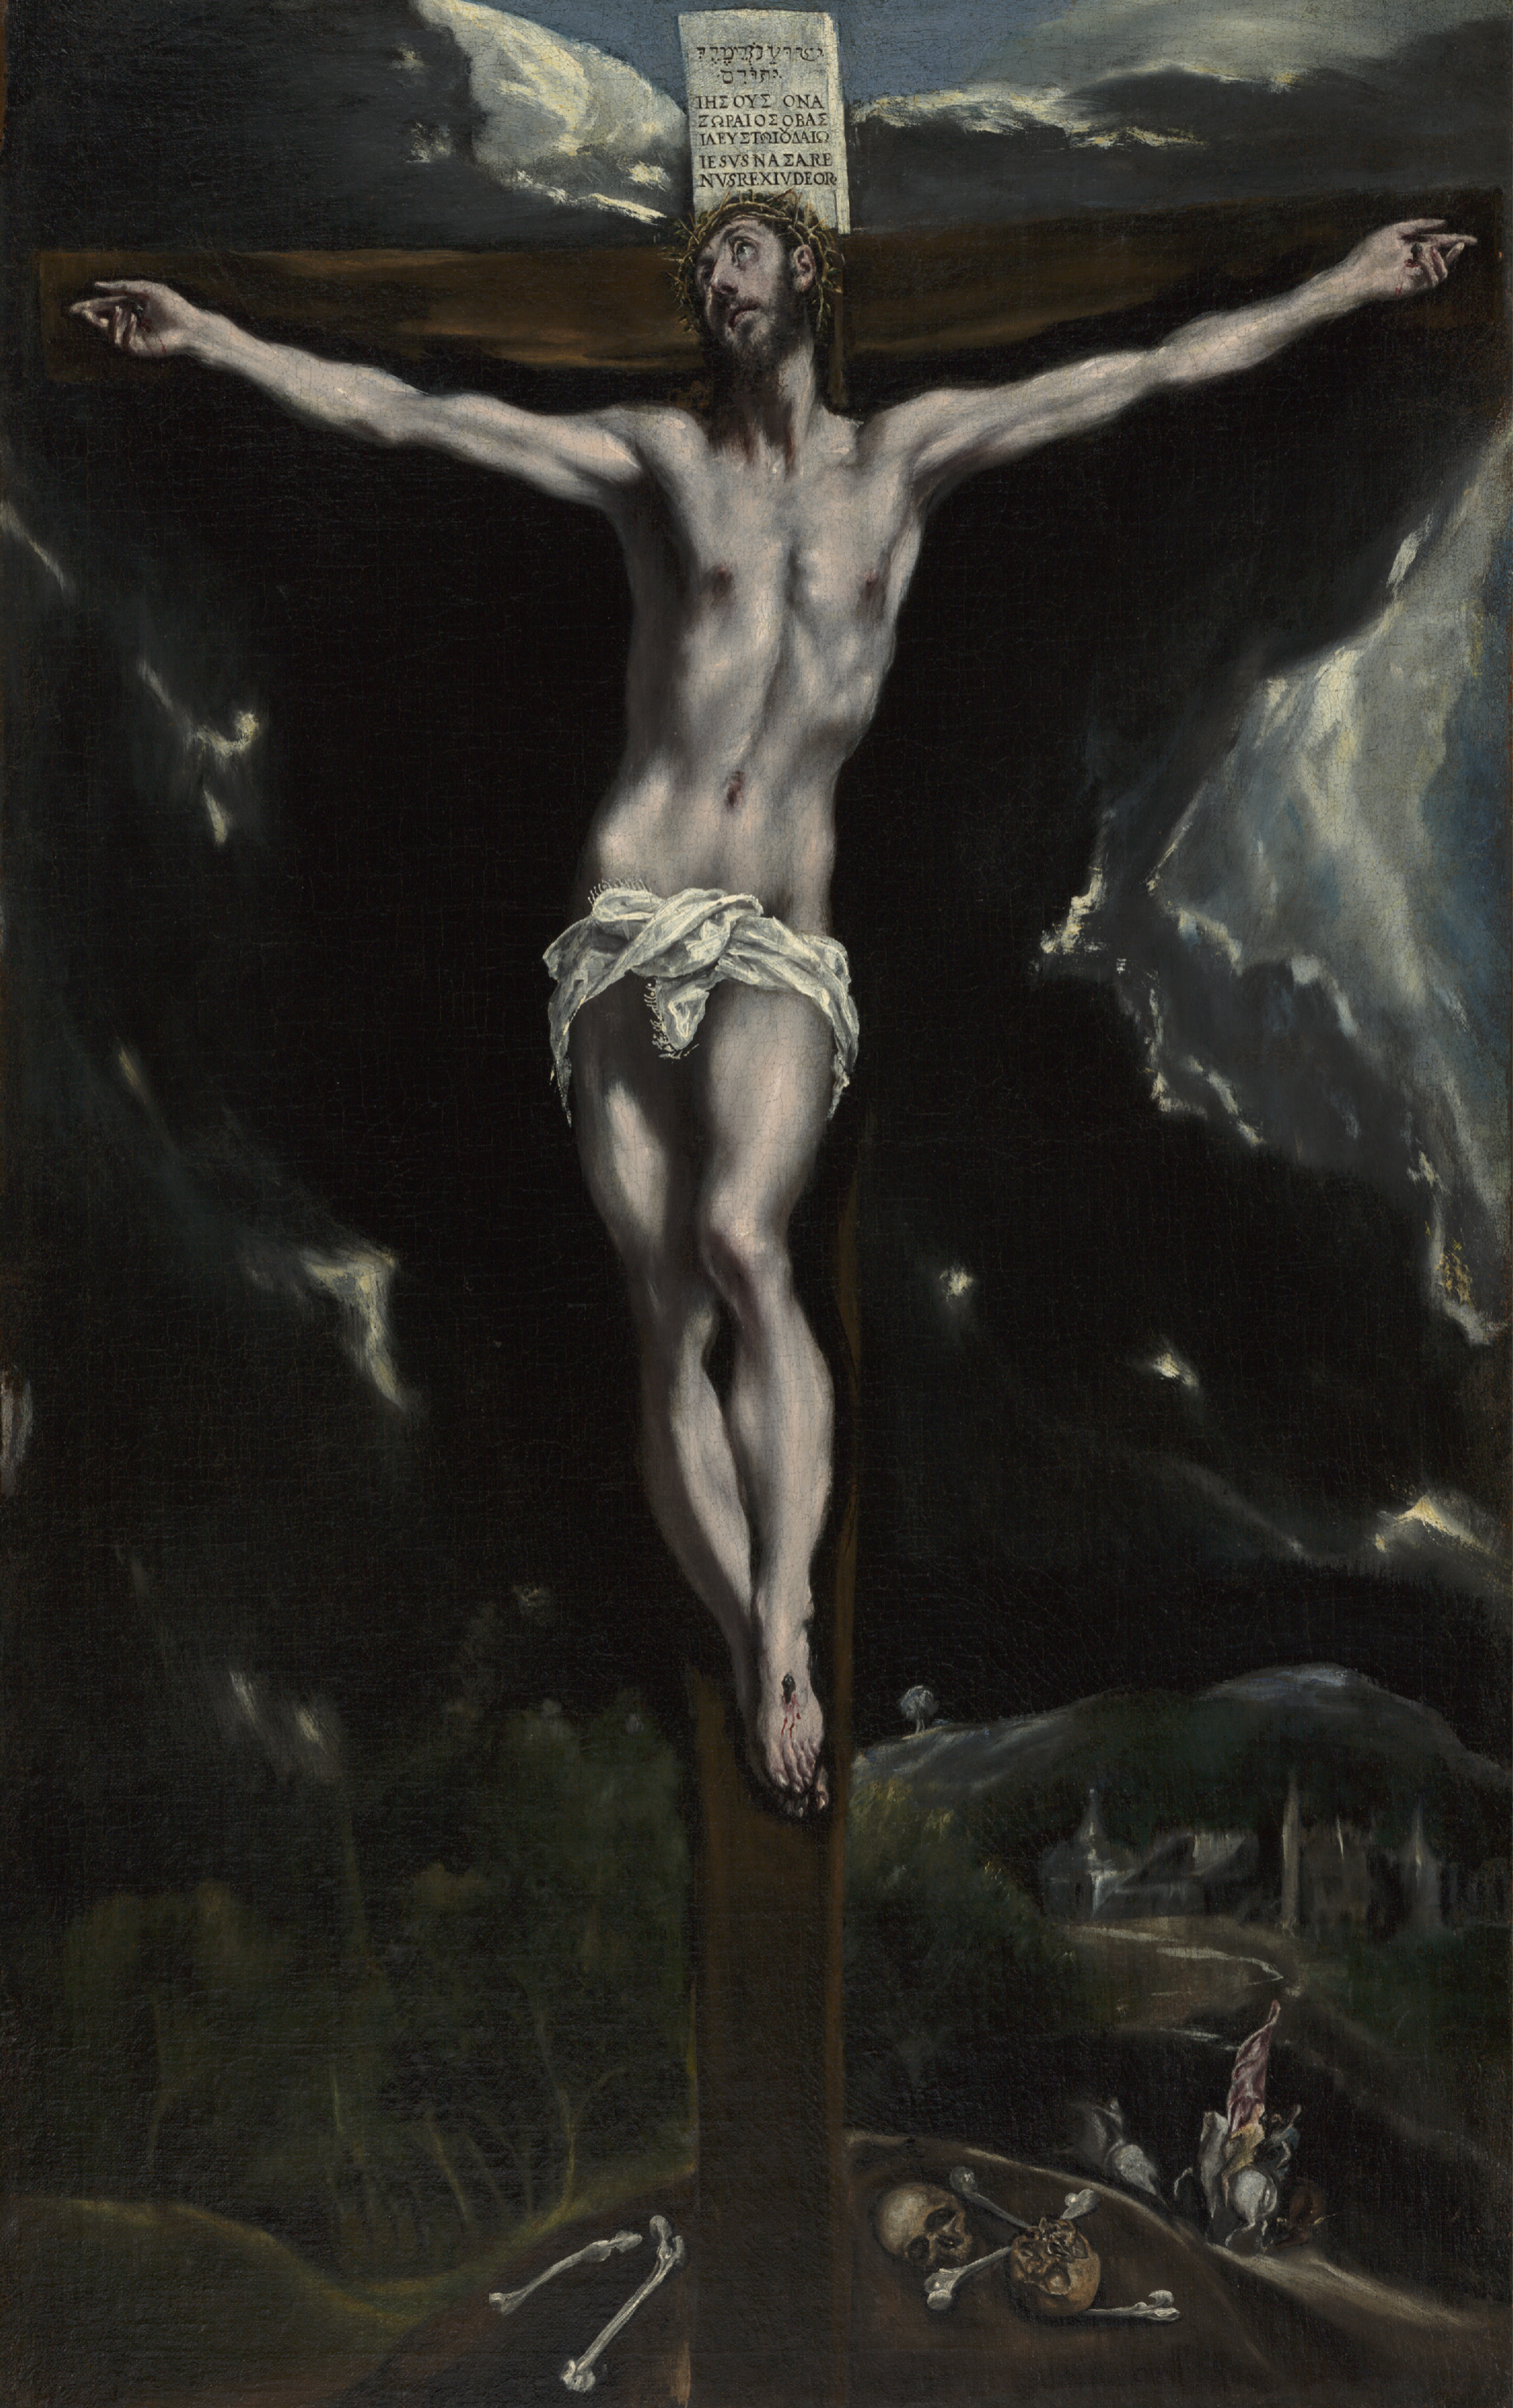 Christ on the Cross by El Greco. Click to expand in lightbox.